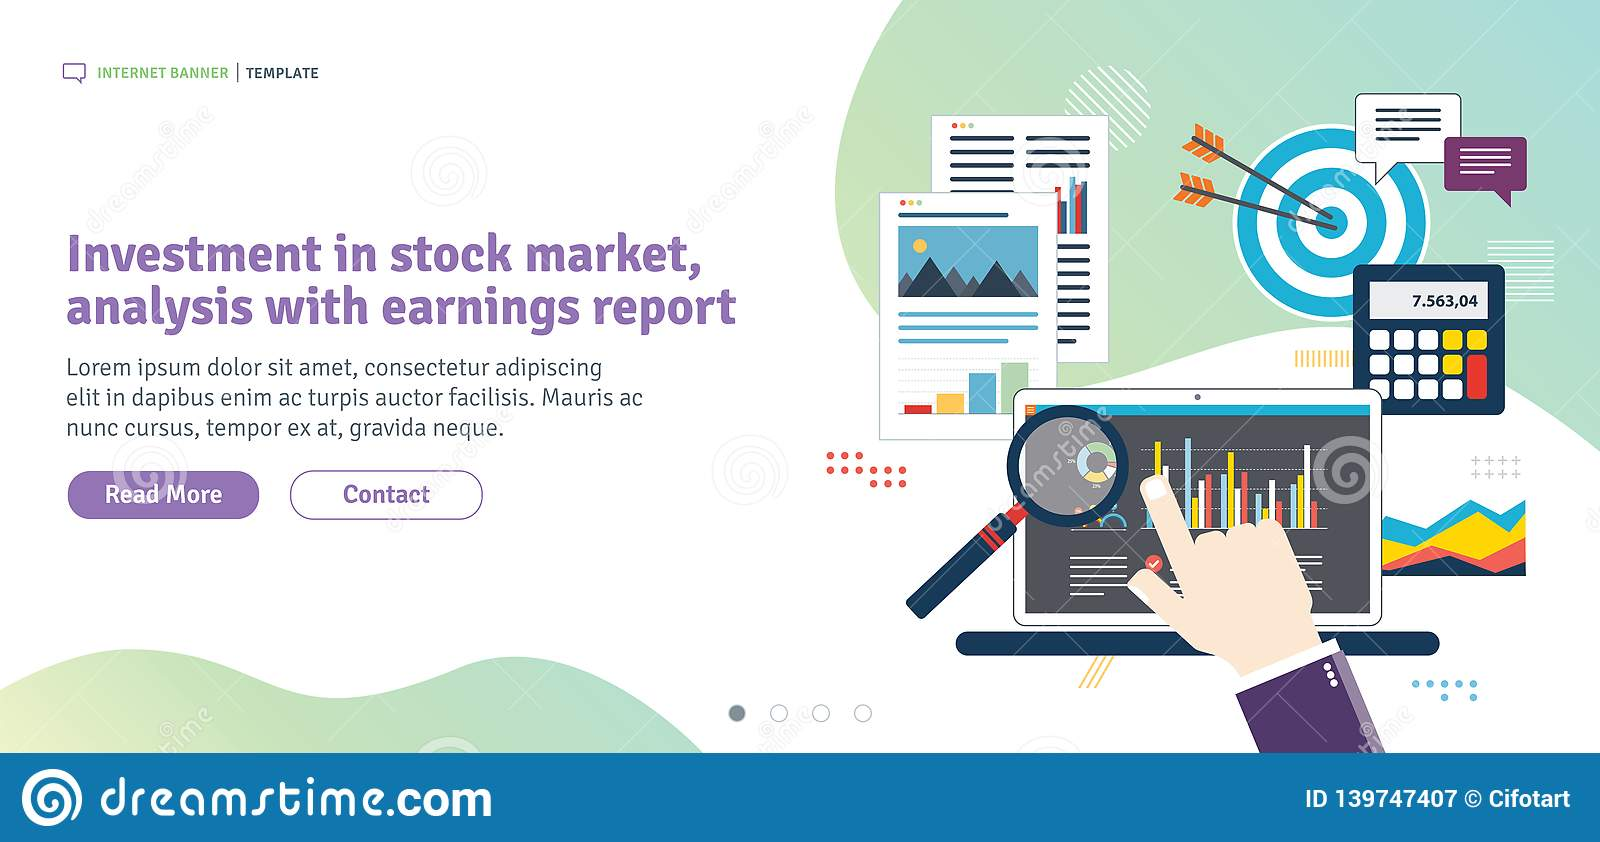 The Facts About Equity Research & Reports - Indian Stock Market Analysis - Bse Revealed